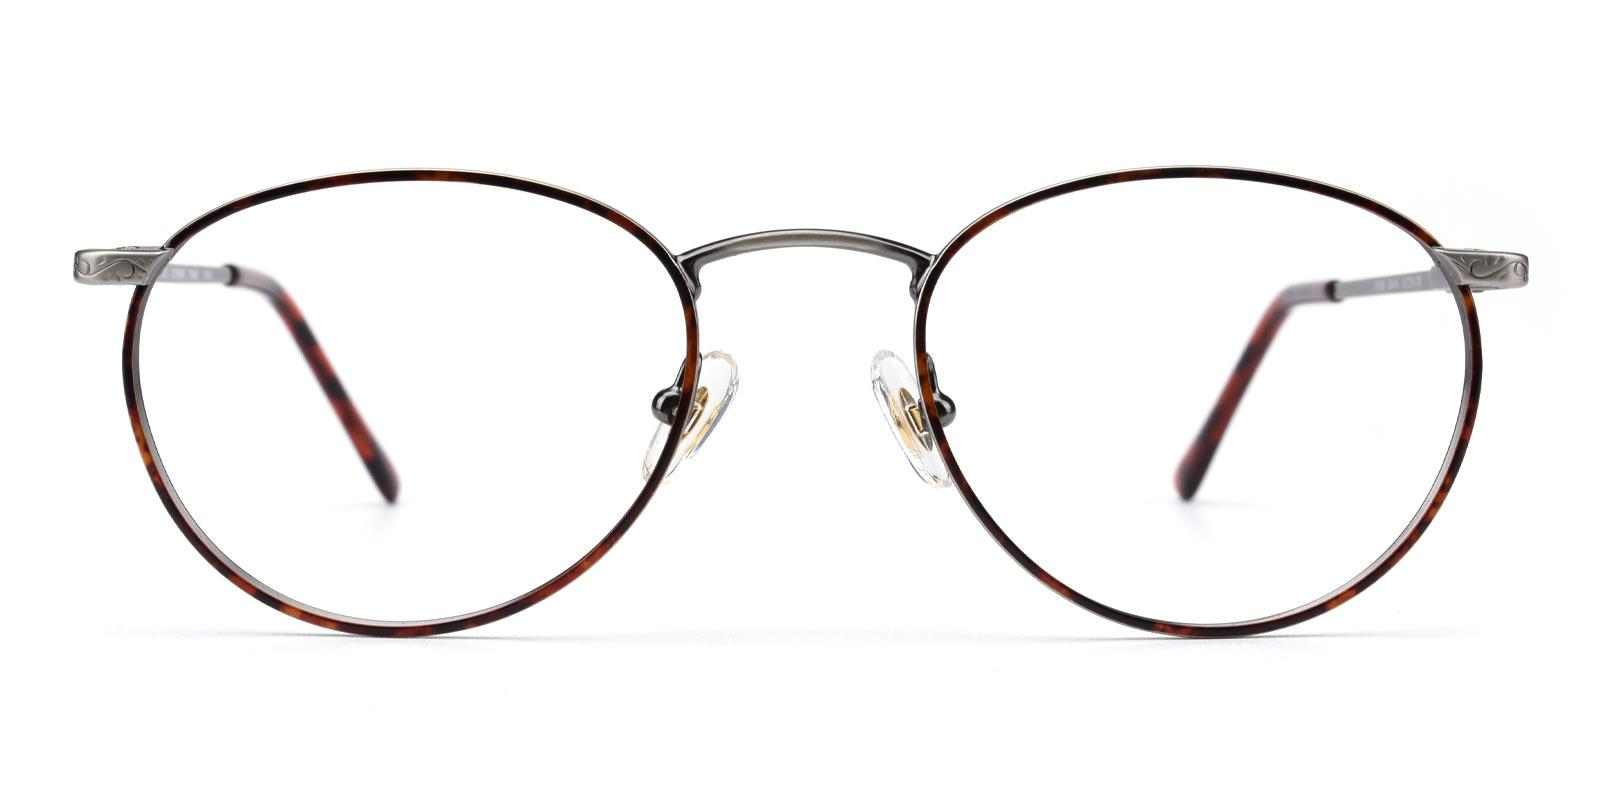 Margaret-Tortoise-Oval-Metal-Eyeglasses-detail